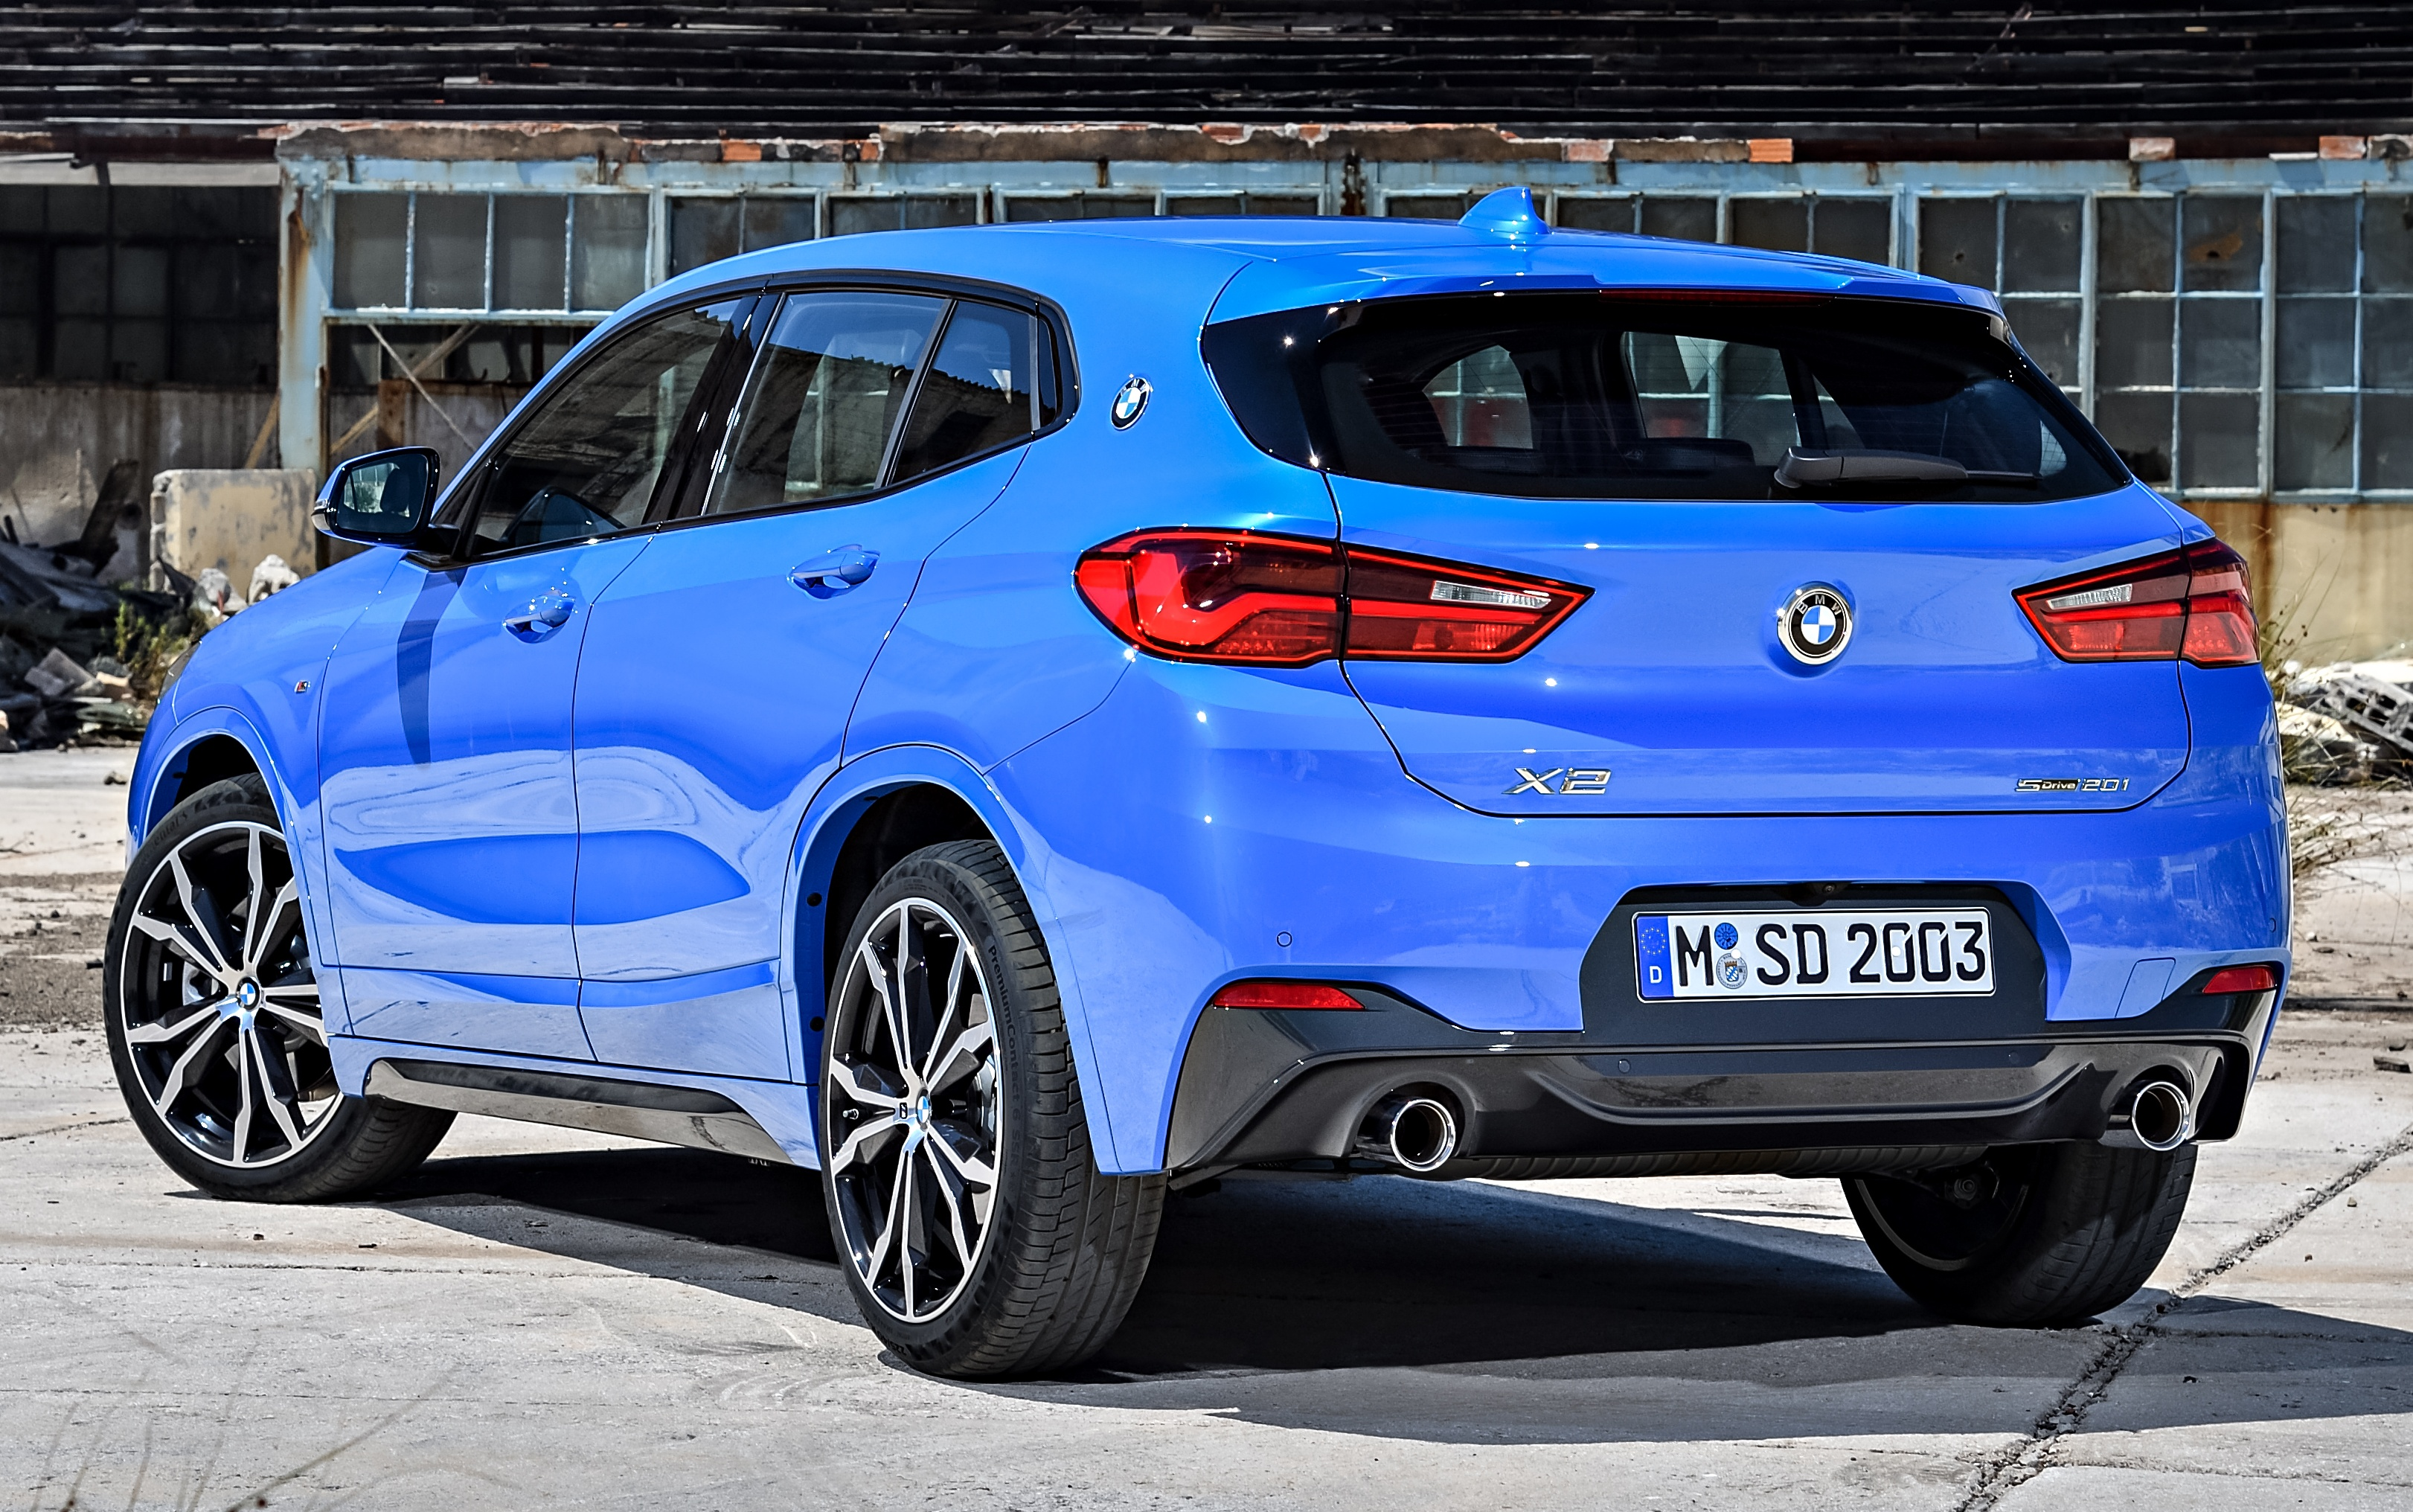 f39 bmw x2 unveiled with new m sport x package paul tan image 729000. Black Bedroom Furniture Sets. Home Design Ideas